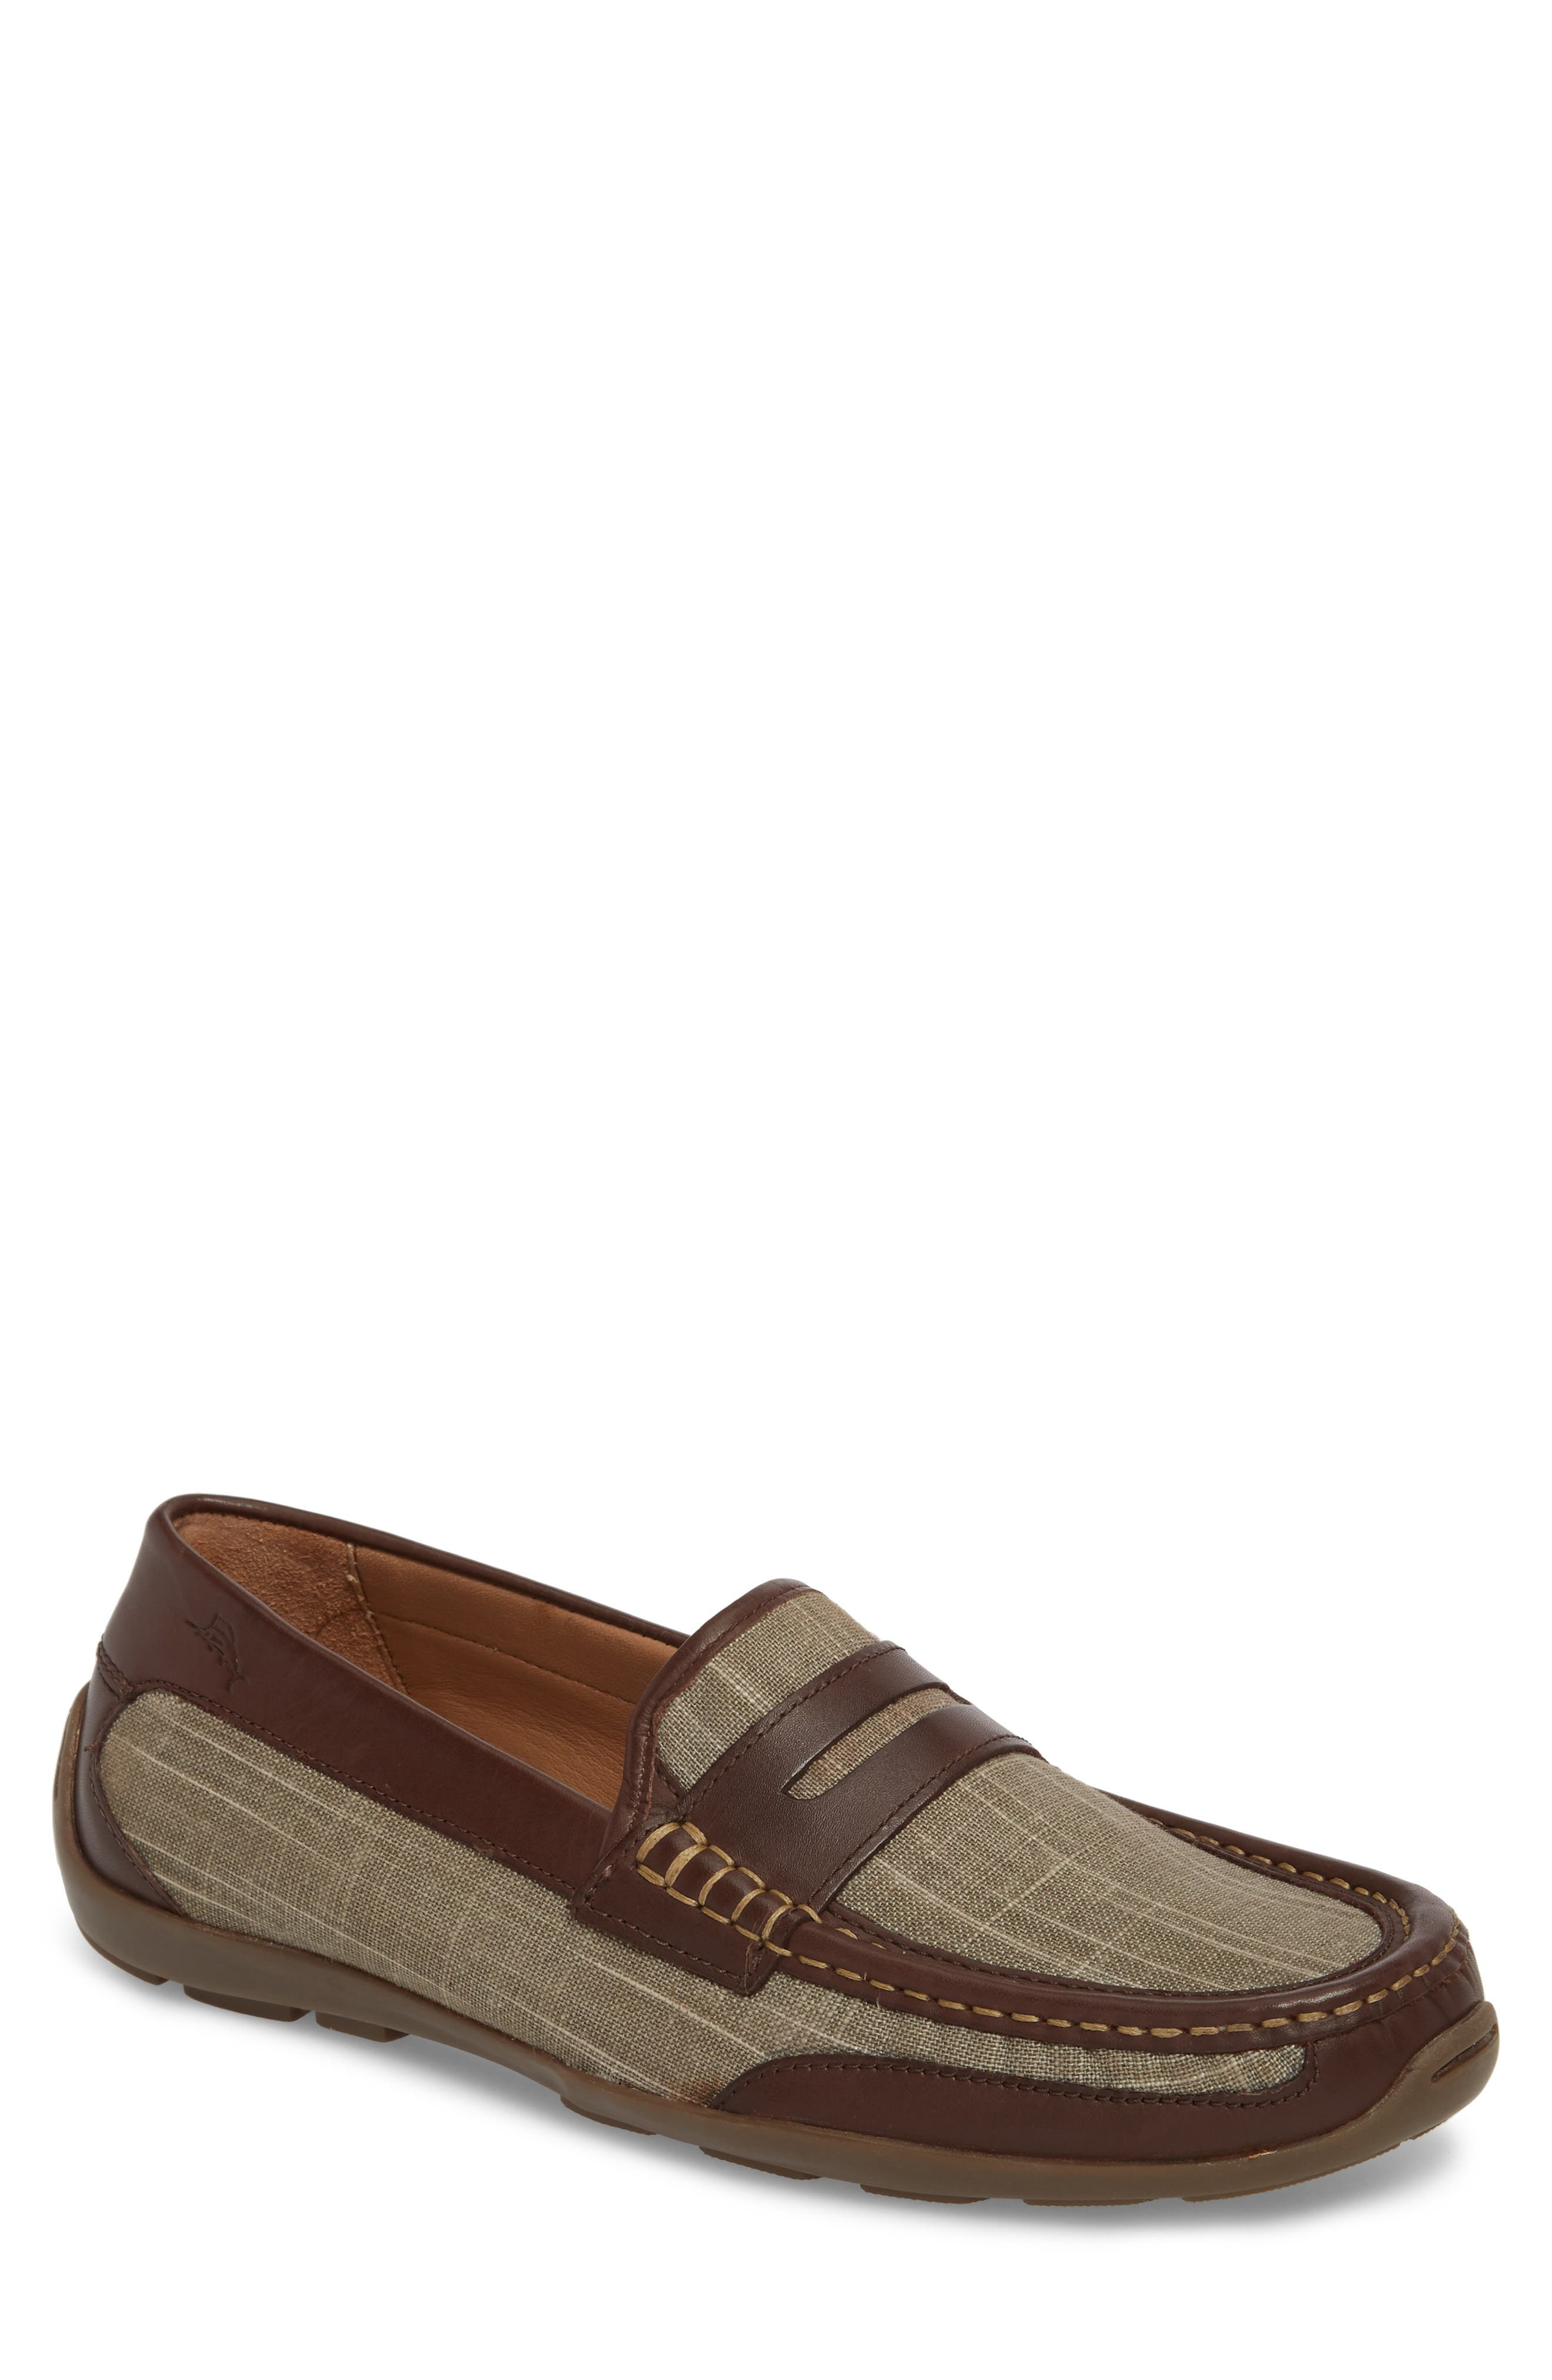 Taza Fronds Driving Shoe,                             Main thumbnail 1, color,                             BROWN/ OLIVE LEATHER/ LINEN